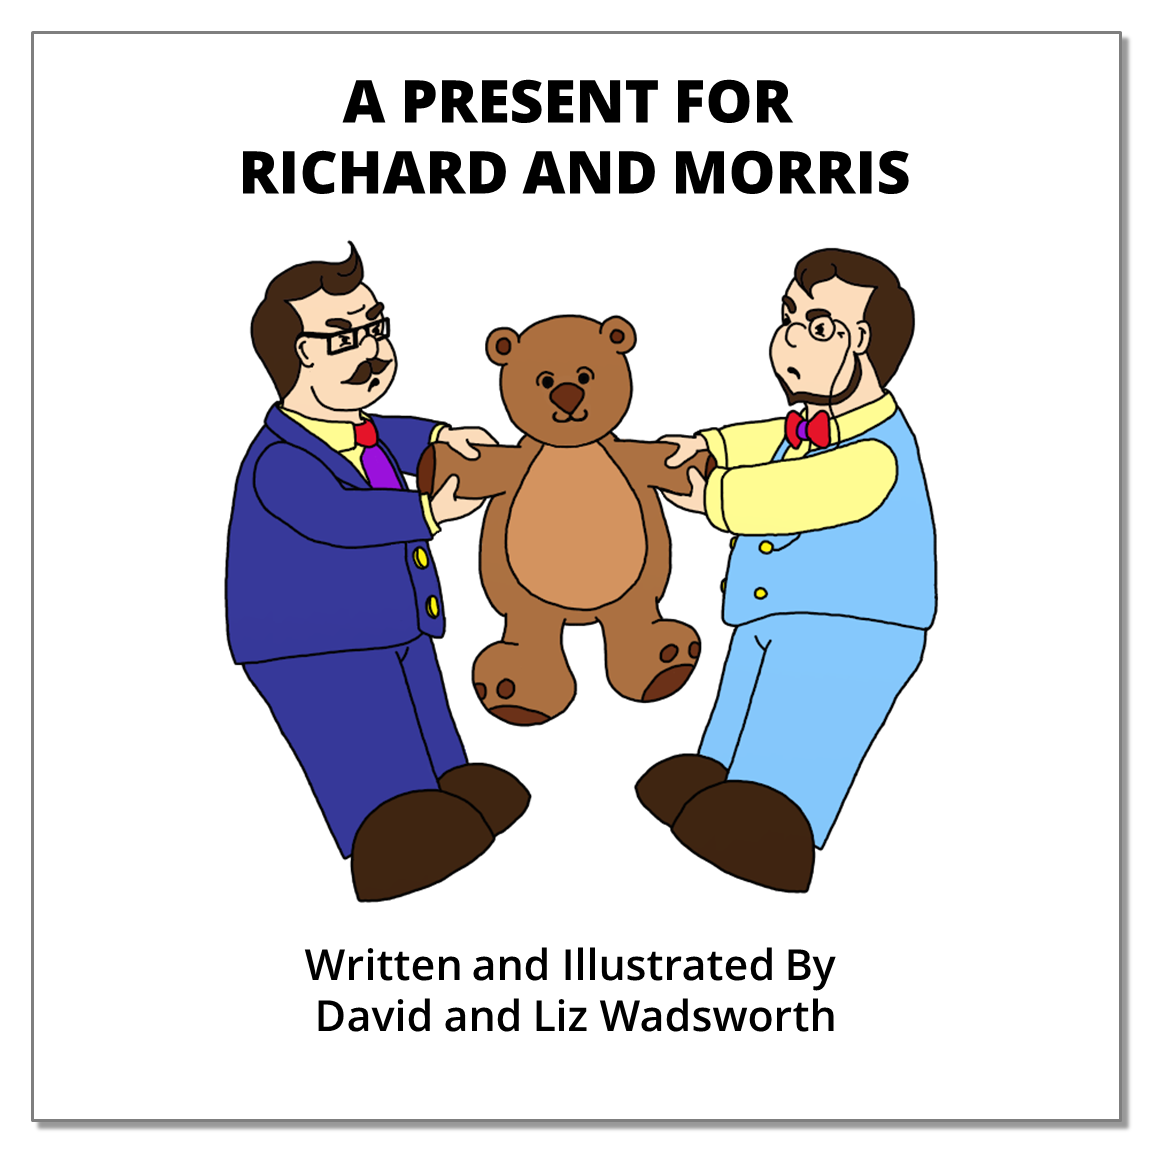 A Present for Richard and MOrris - The parable of the rich fool.